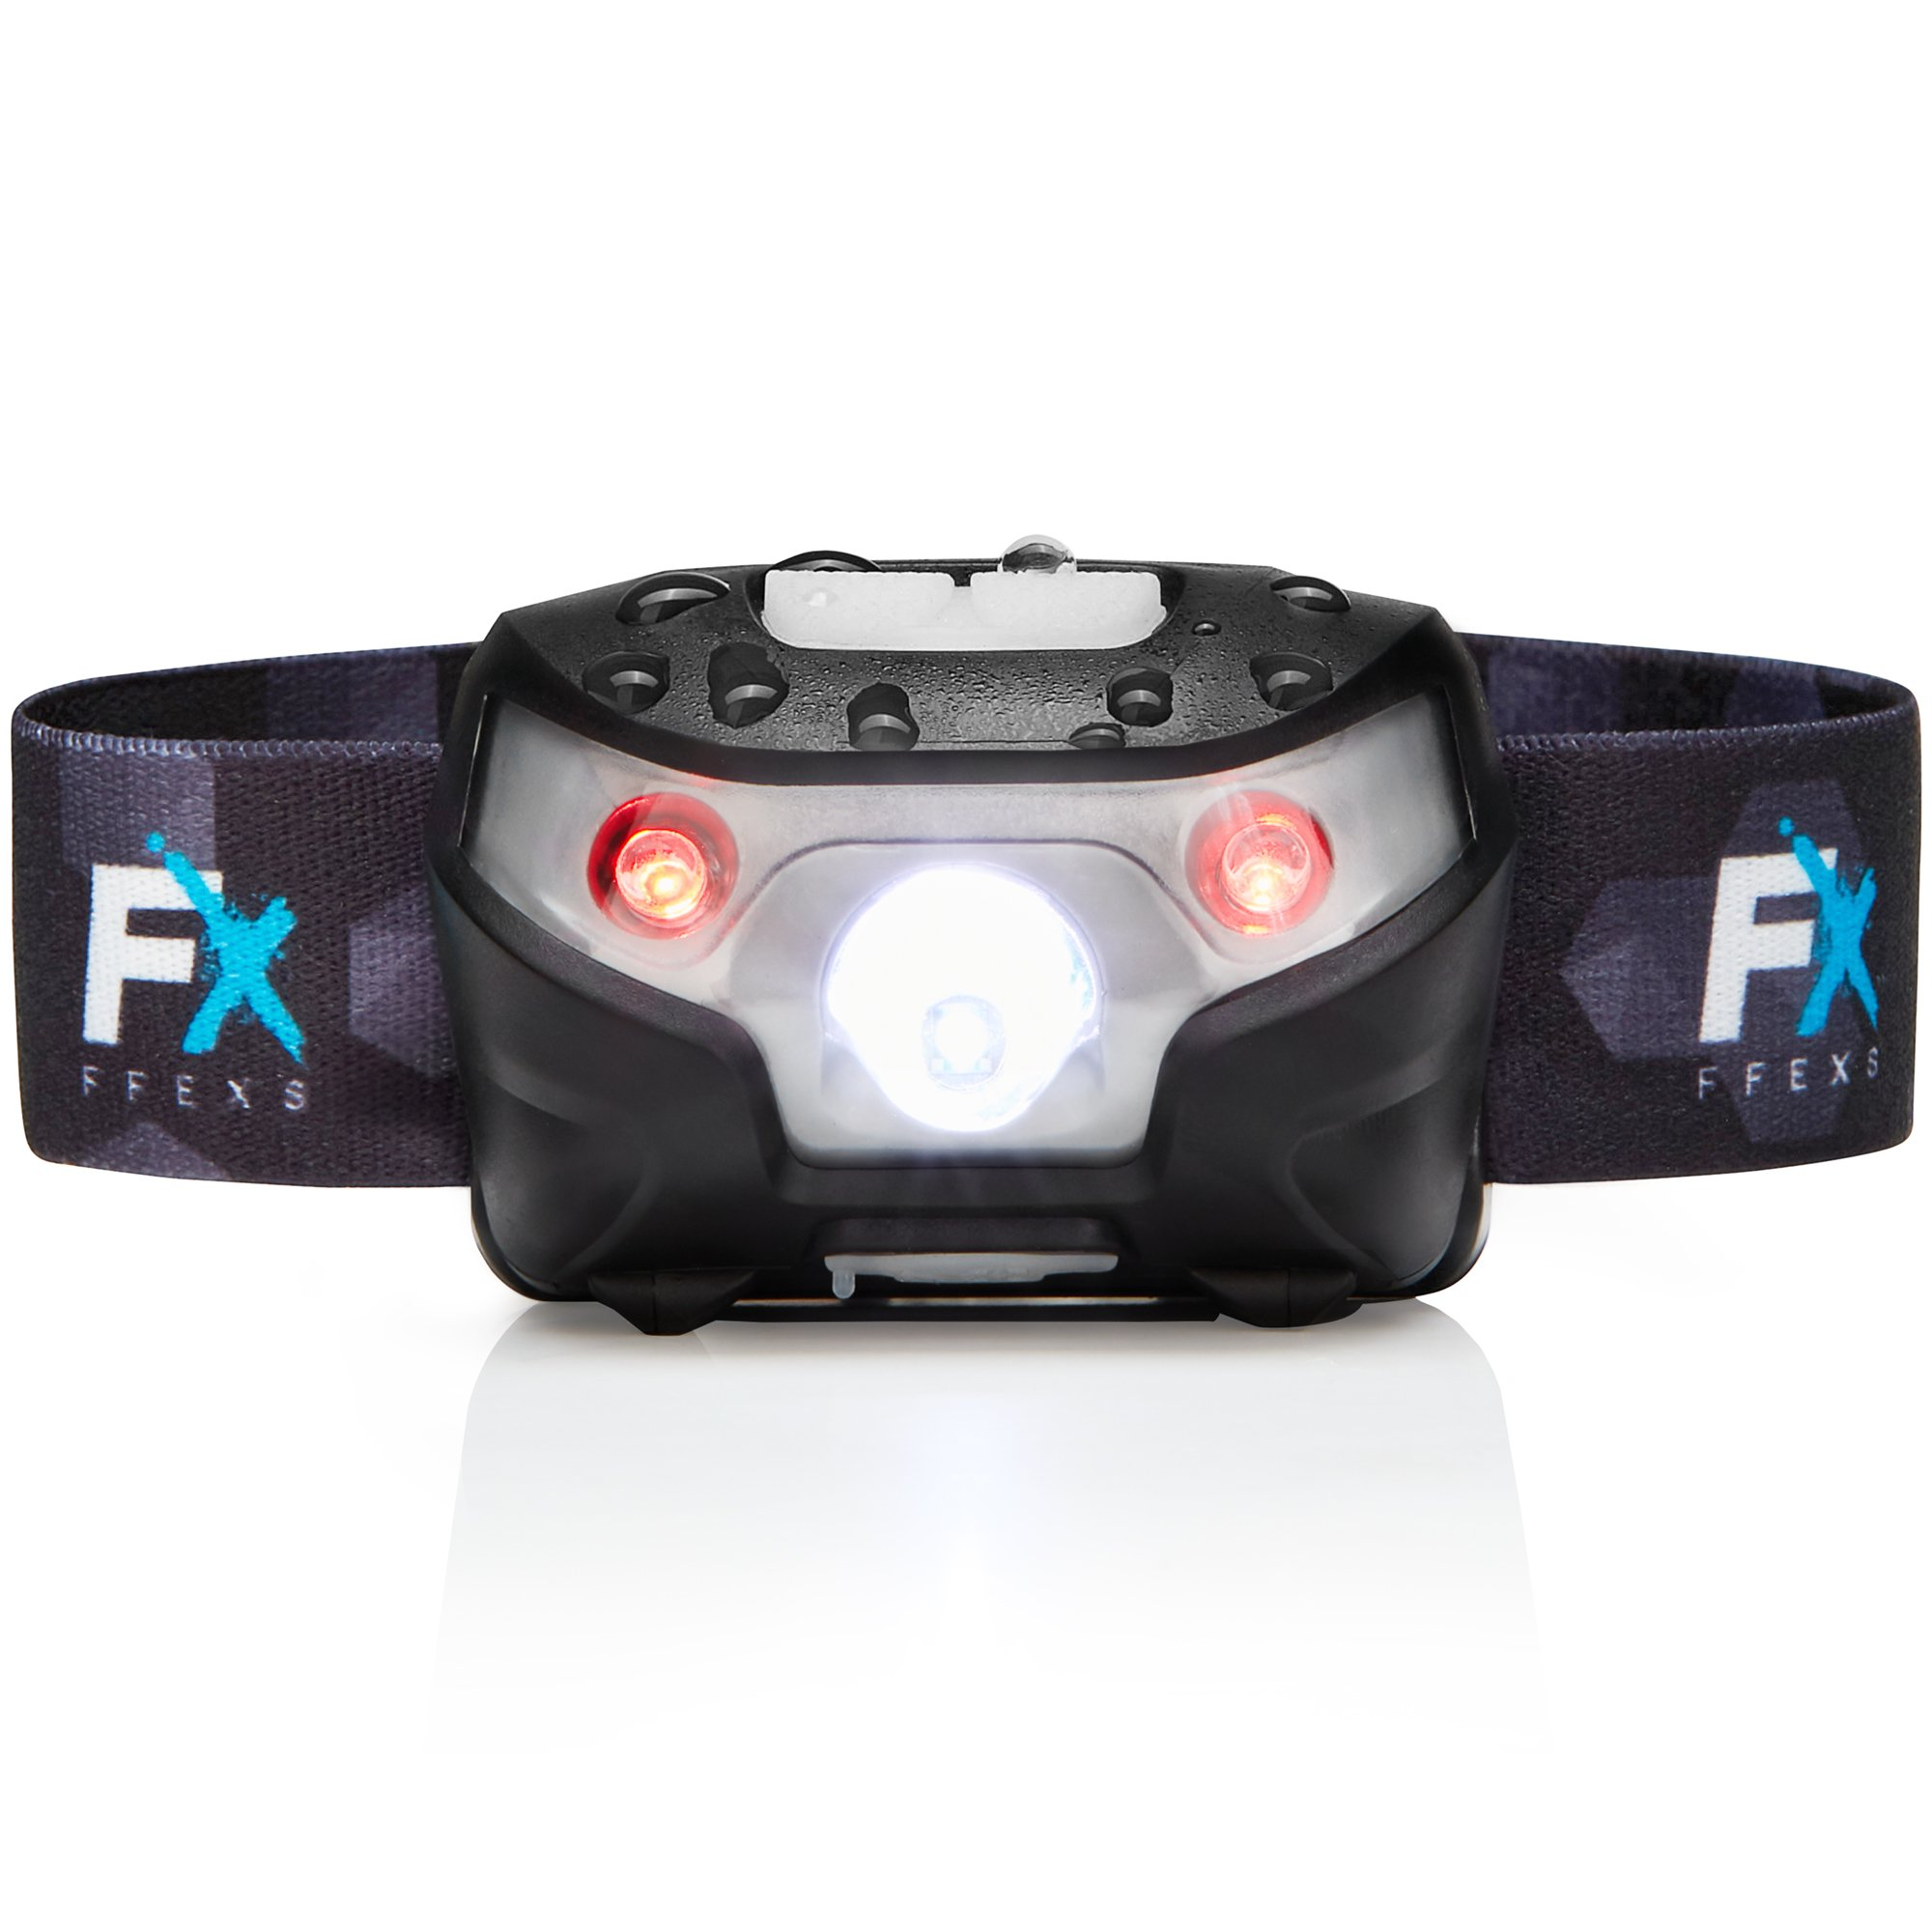 Headlamp LED Headlight Super Bright Premium USB Rechargeable Head Torch Waterproof Design - White & Red Light 5 Modes Comfortable Best Equipment Lamp Bulb Night Running Camping - Solar Flashlight Kids by FX FFEXS (Image #4)